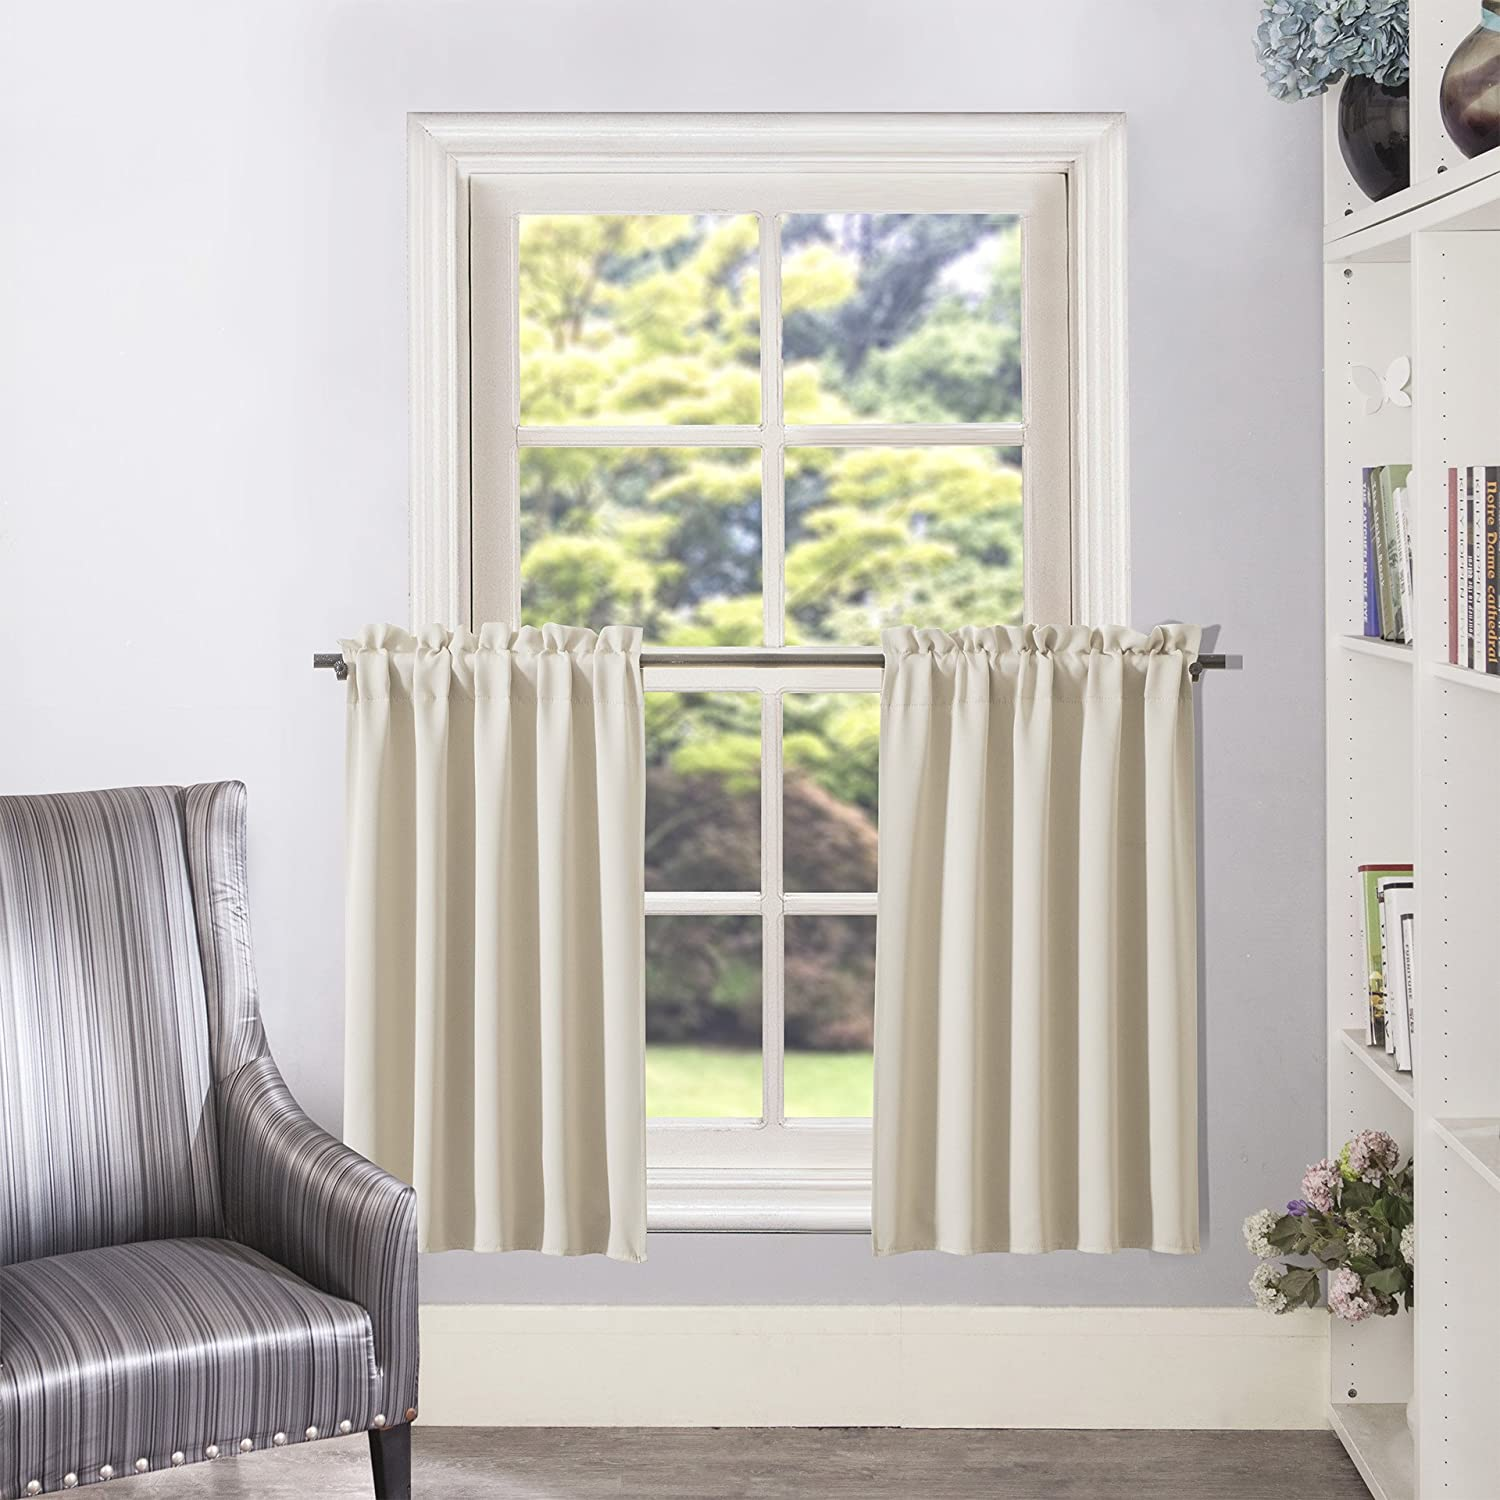 "Aquazolax Blackout Curtain Tier for Kitchen Window Blackout Curtain Panel Thermal Insulated Window Treatment for Dining Room, 1 Pair, 28"" x 36"", Beige"